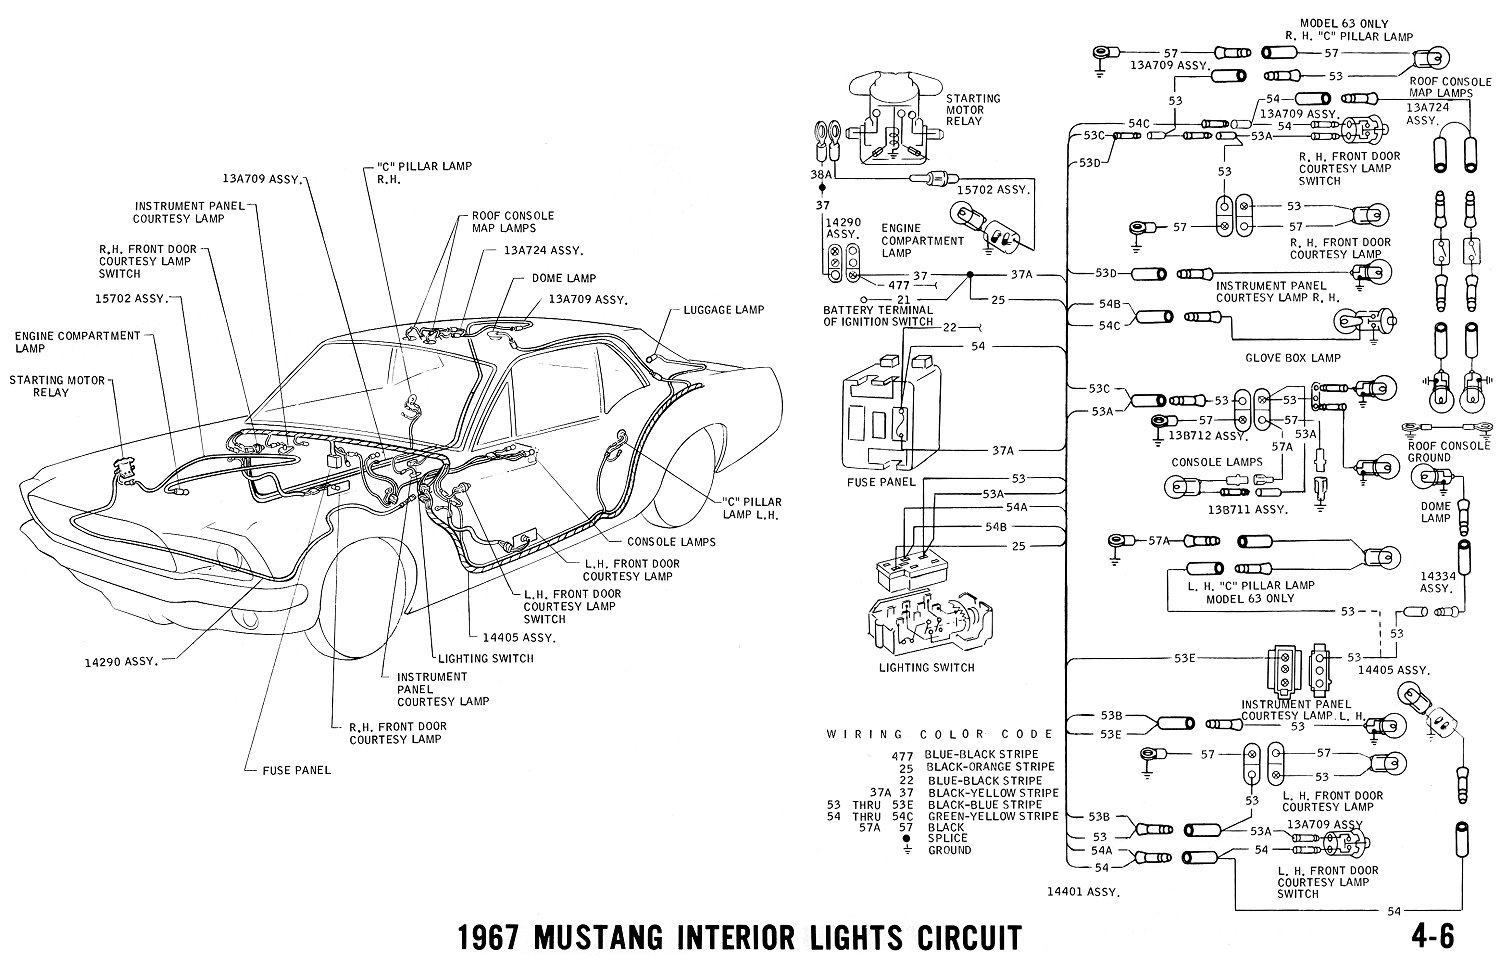 67 Camaro Dash Wiring Schematic Diagram Schematics 68 Harness Wire 1967 Mustang